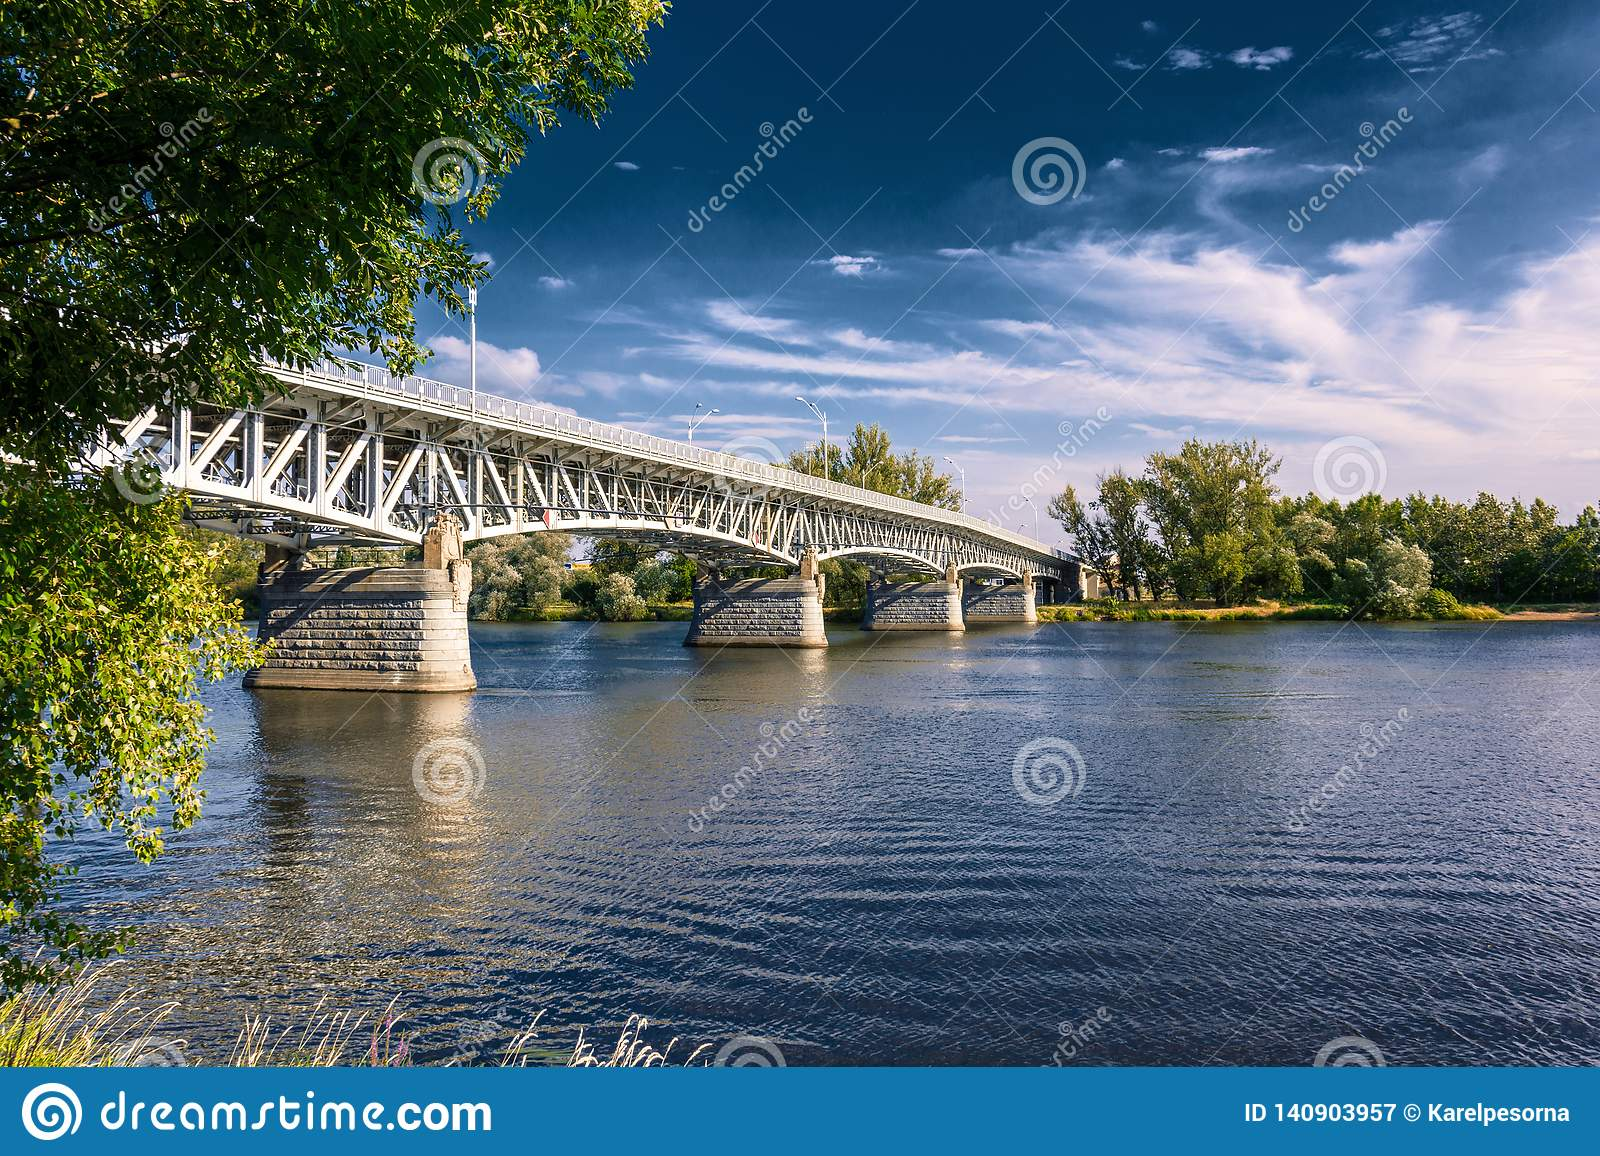 Steel bridge across the river Elbe in the town of Litomerice in the Czech Republic